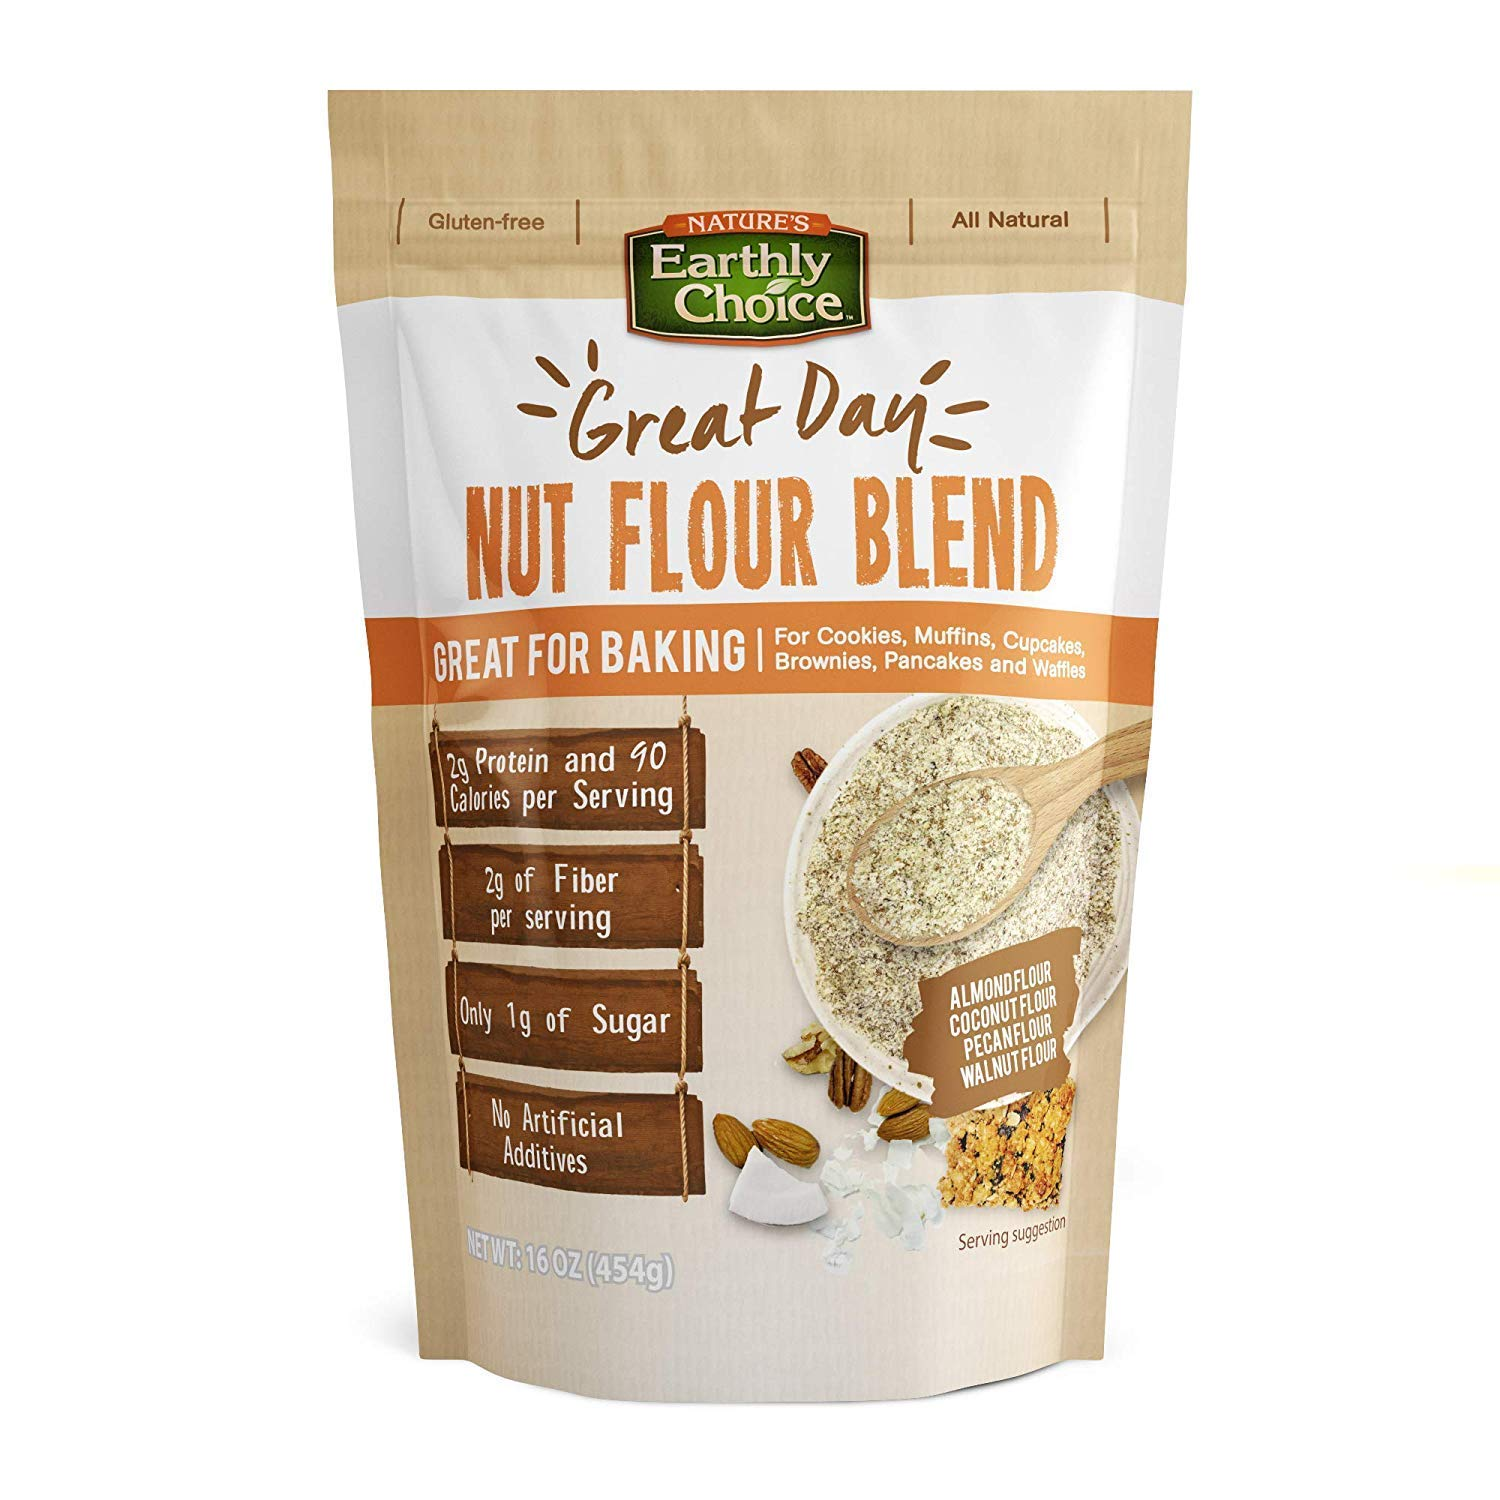 Nature's Earthly Choice Nut Flour Blend 2-Pack-All Natural Gluten Free Non GMO Great for Baking